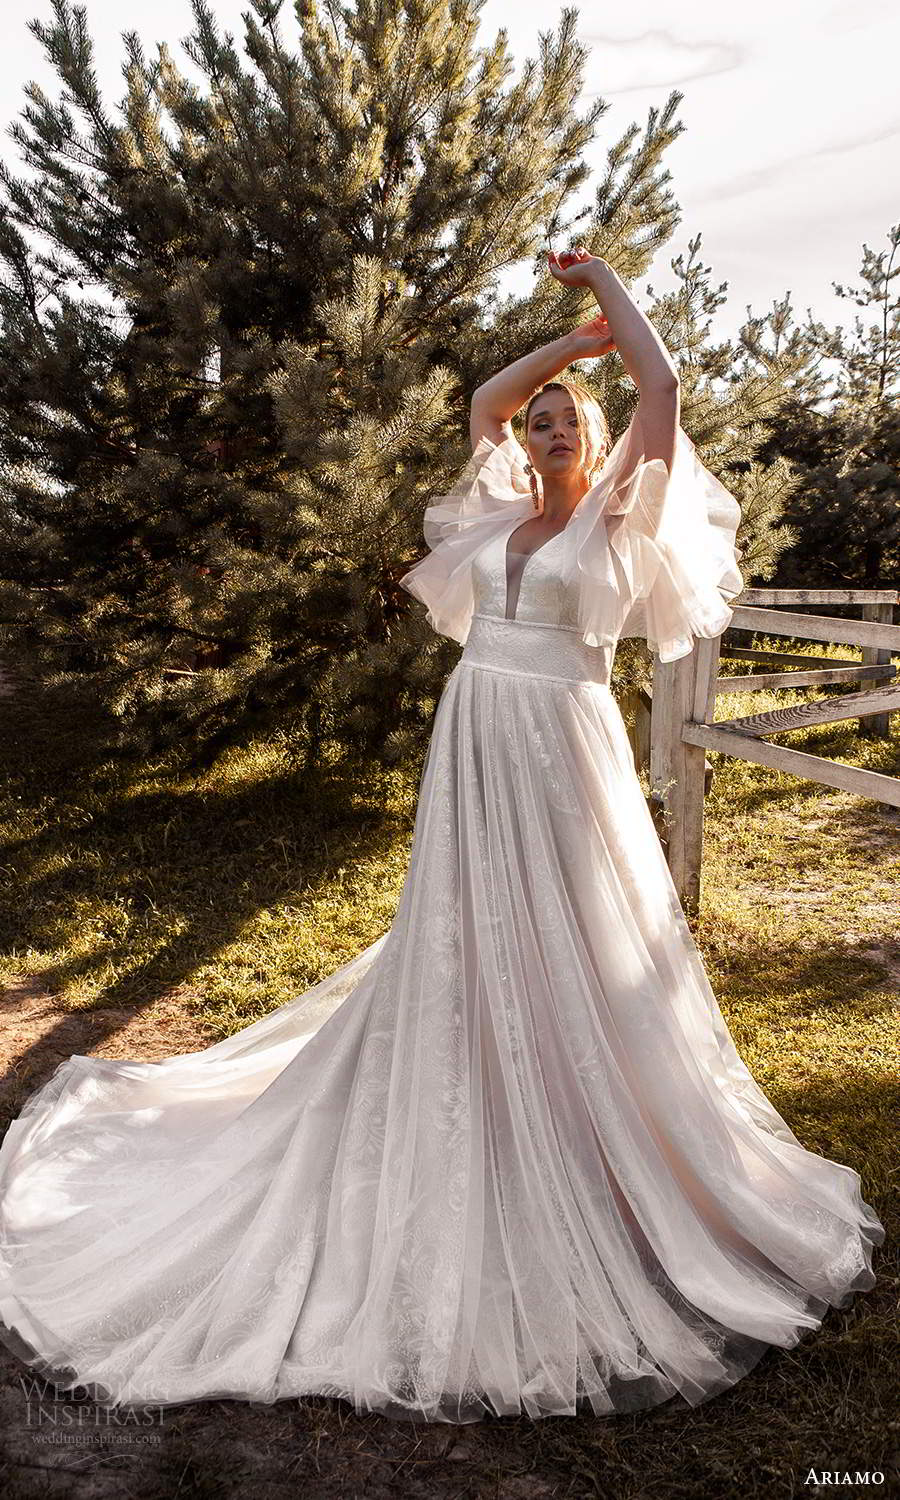 ariamo 2021 plus bridal flutter sleeves plunging v neckline embellished a line ball gown wedding dress chapel train (8) mv